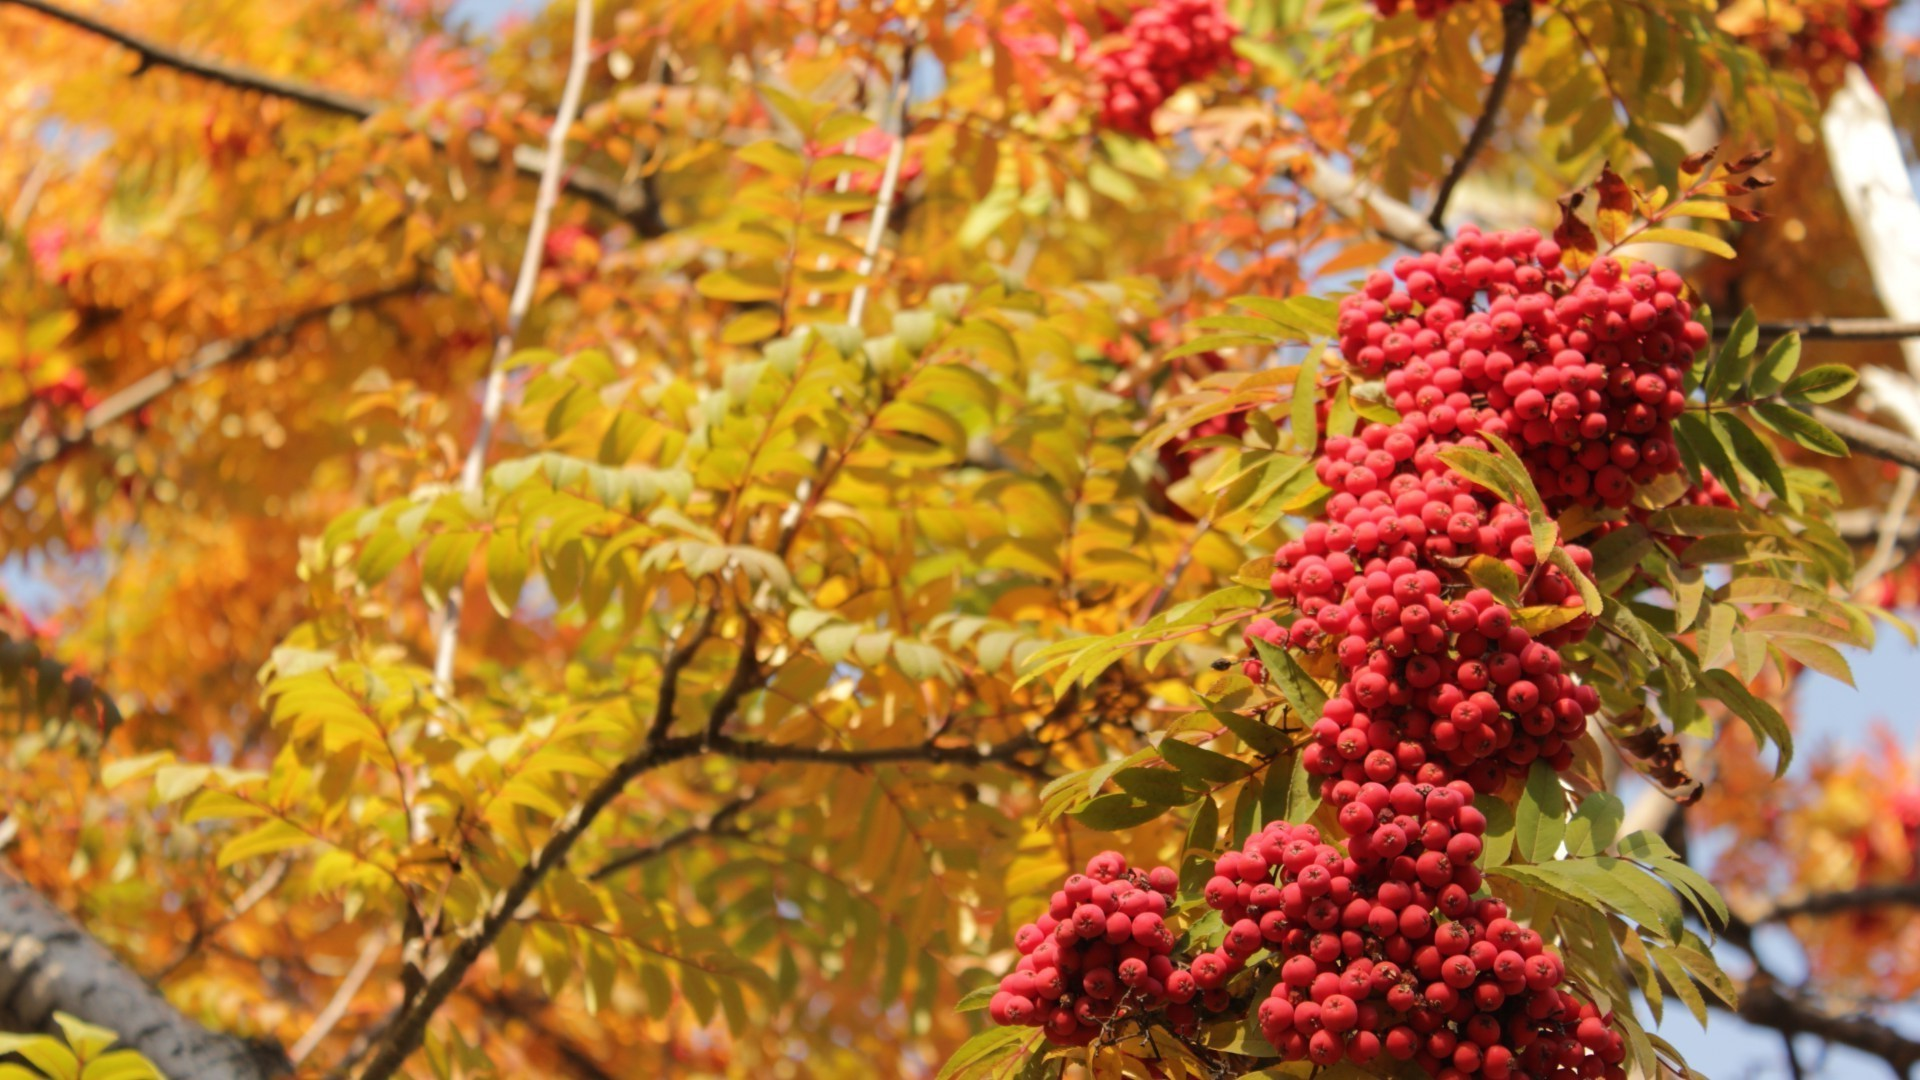 Bunches of Rowan